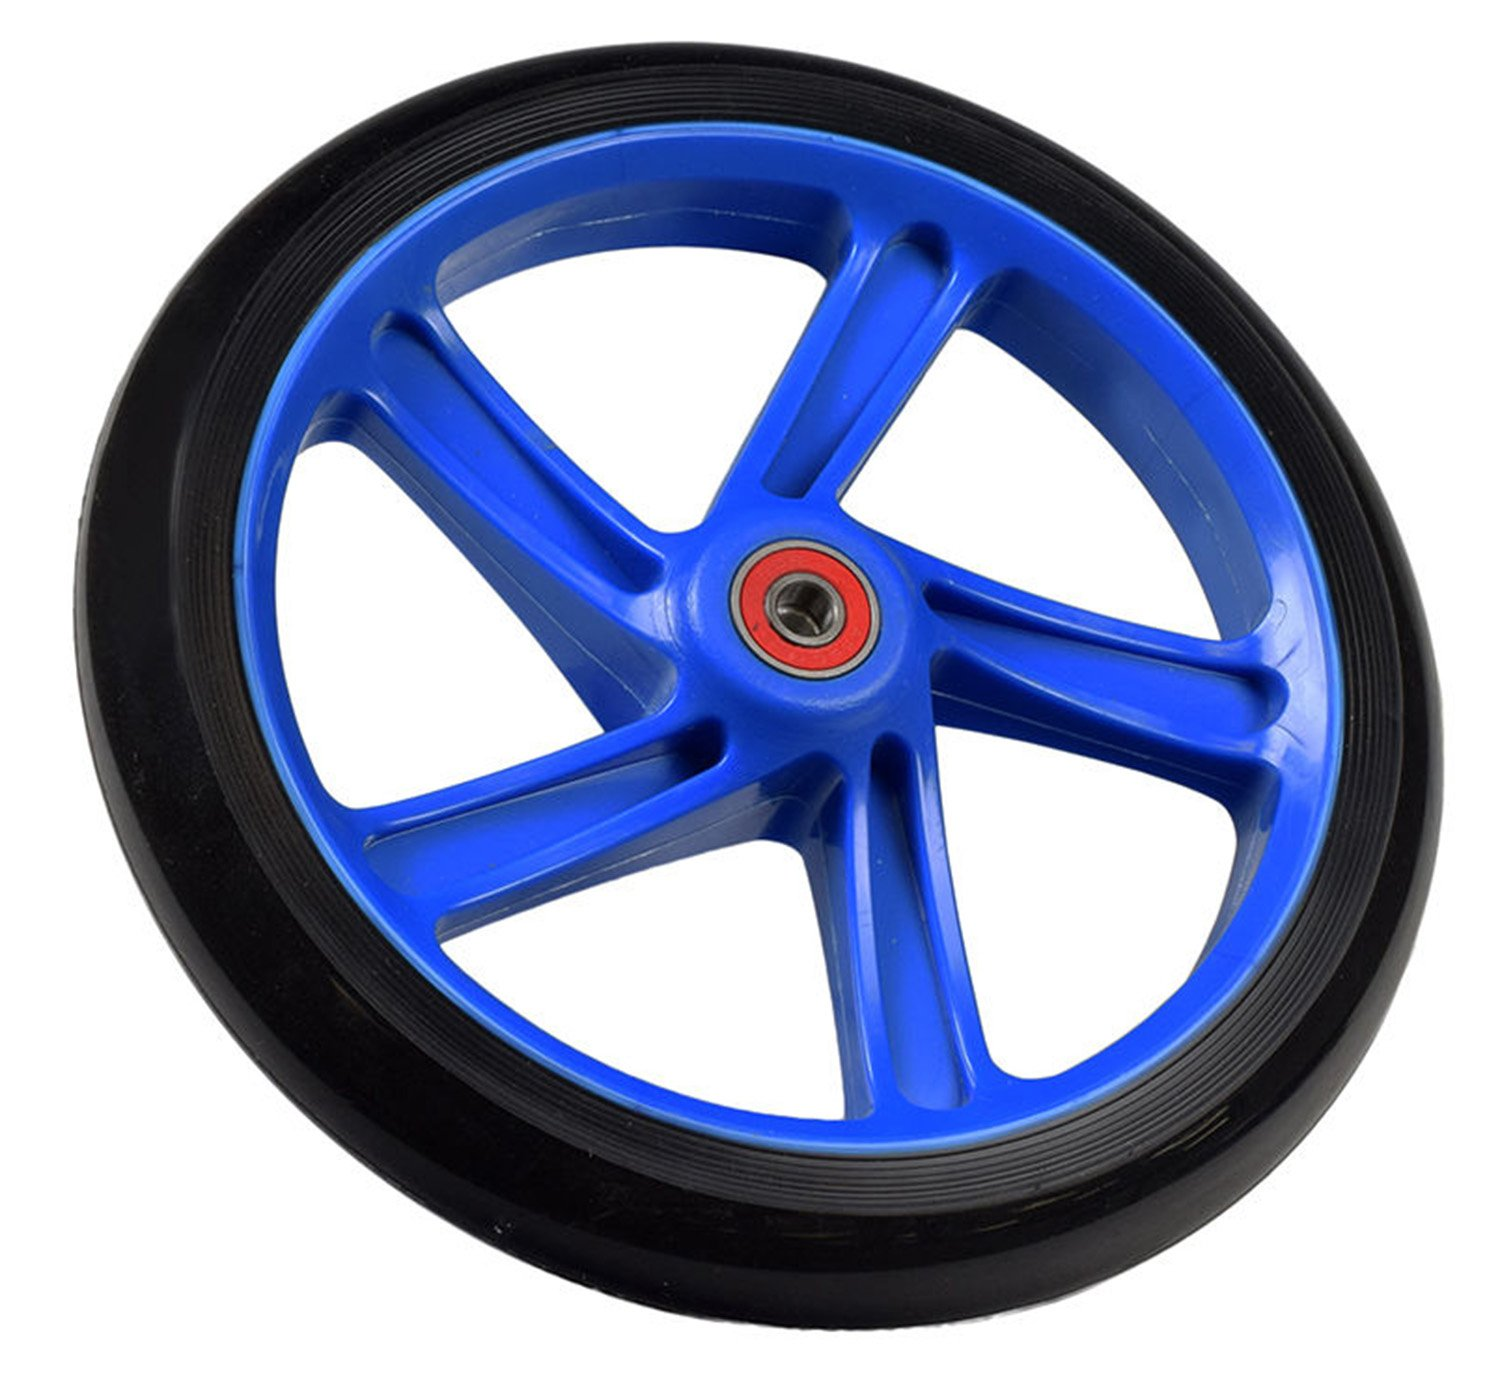 Replacement Wheel for the Razor A5 Lux Kick Scooter 200 mm (8'): Black Wheel with BLUE Hub